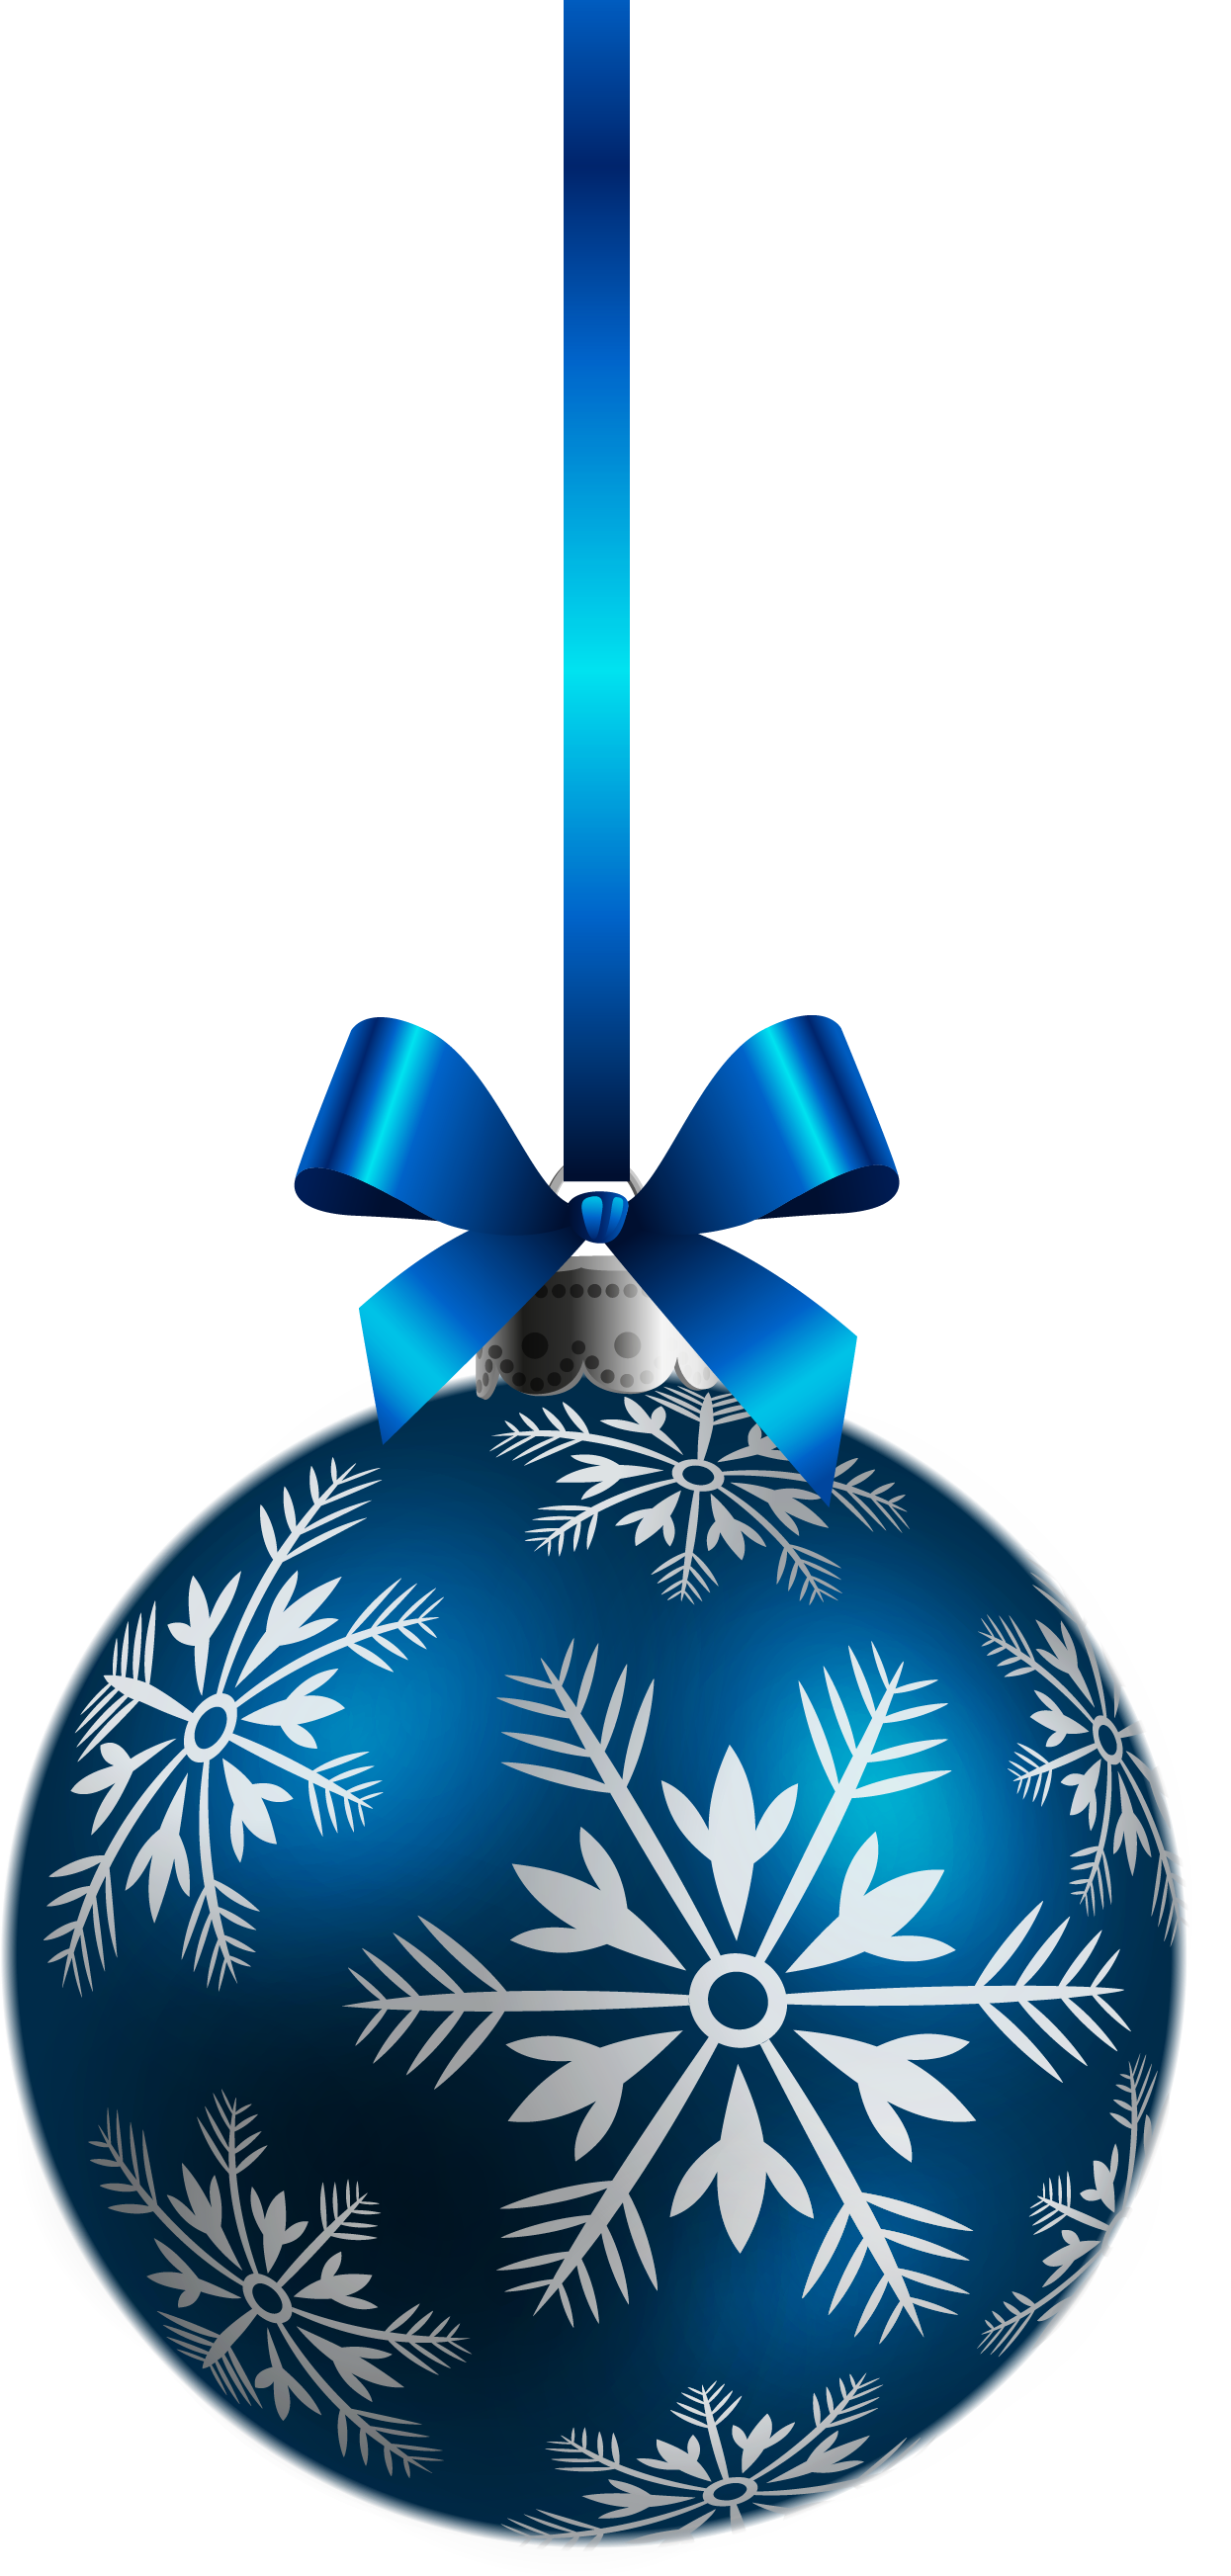 Blue Christmas Decorations - ClipArt Best